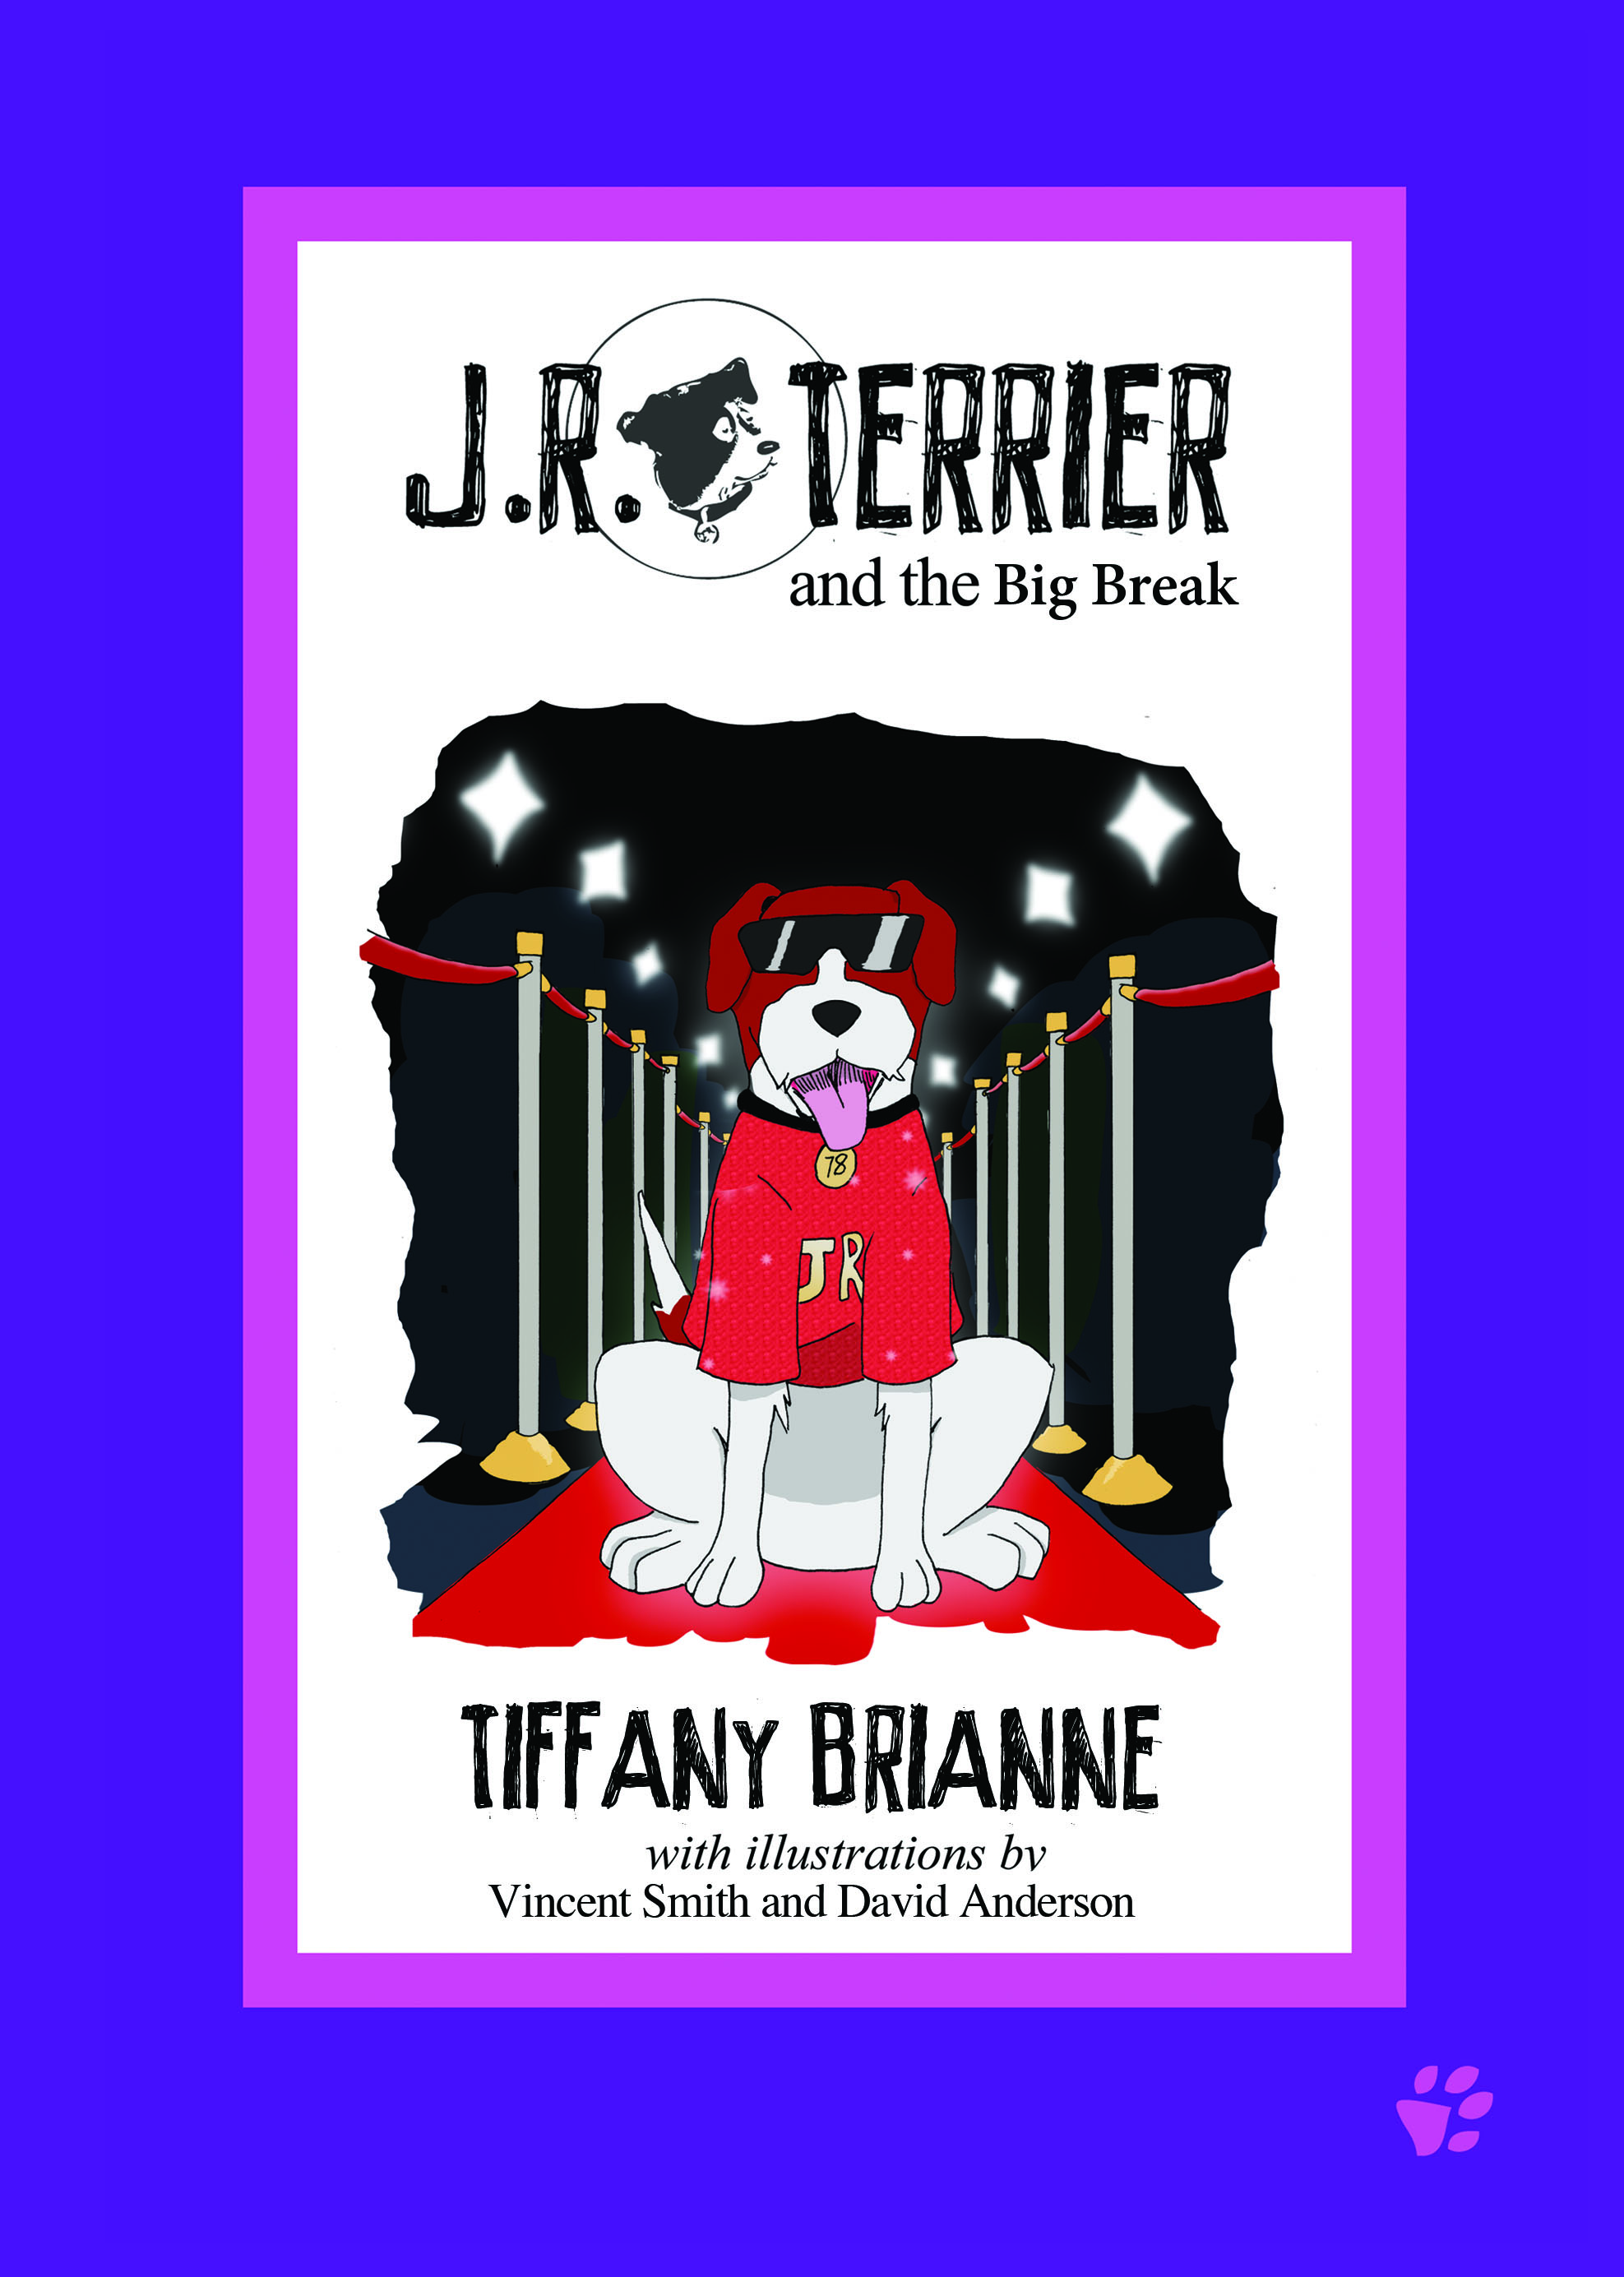 JR Terrier and the Big Break!